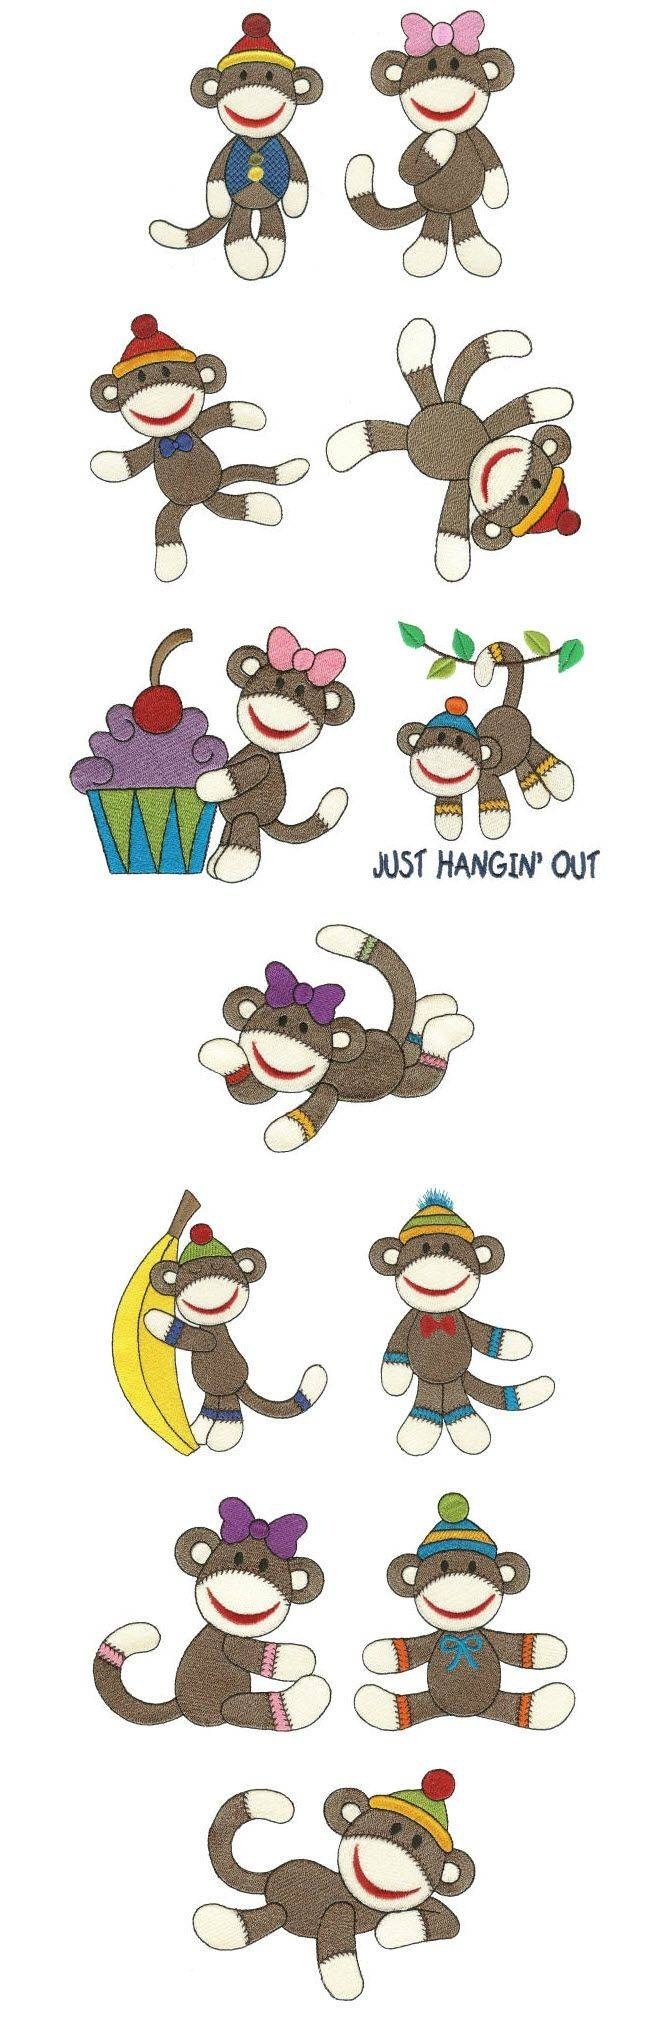 151 Best Kids – Monkeys Images On Pinterest | Monkeys, Wrapping Throughout Most Up To Date Sock Monkey Wall Art (View 24 of 30)